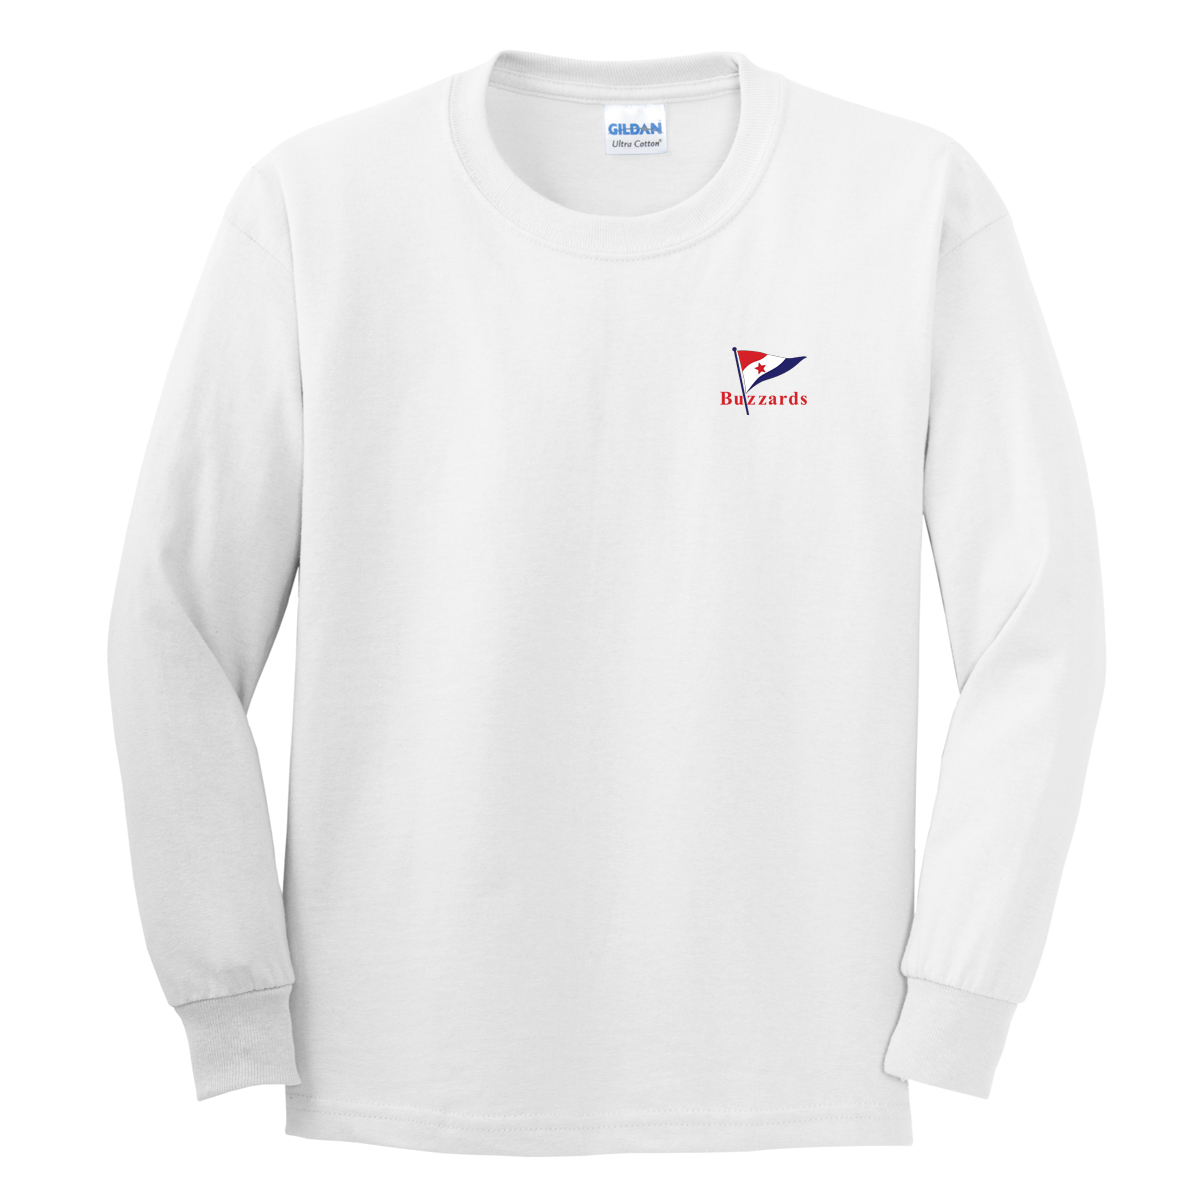 Buzzards Yacht Club - Men's Long Sleeve Cotton Tee